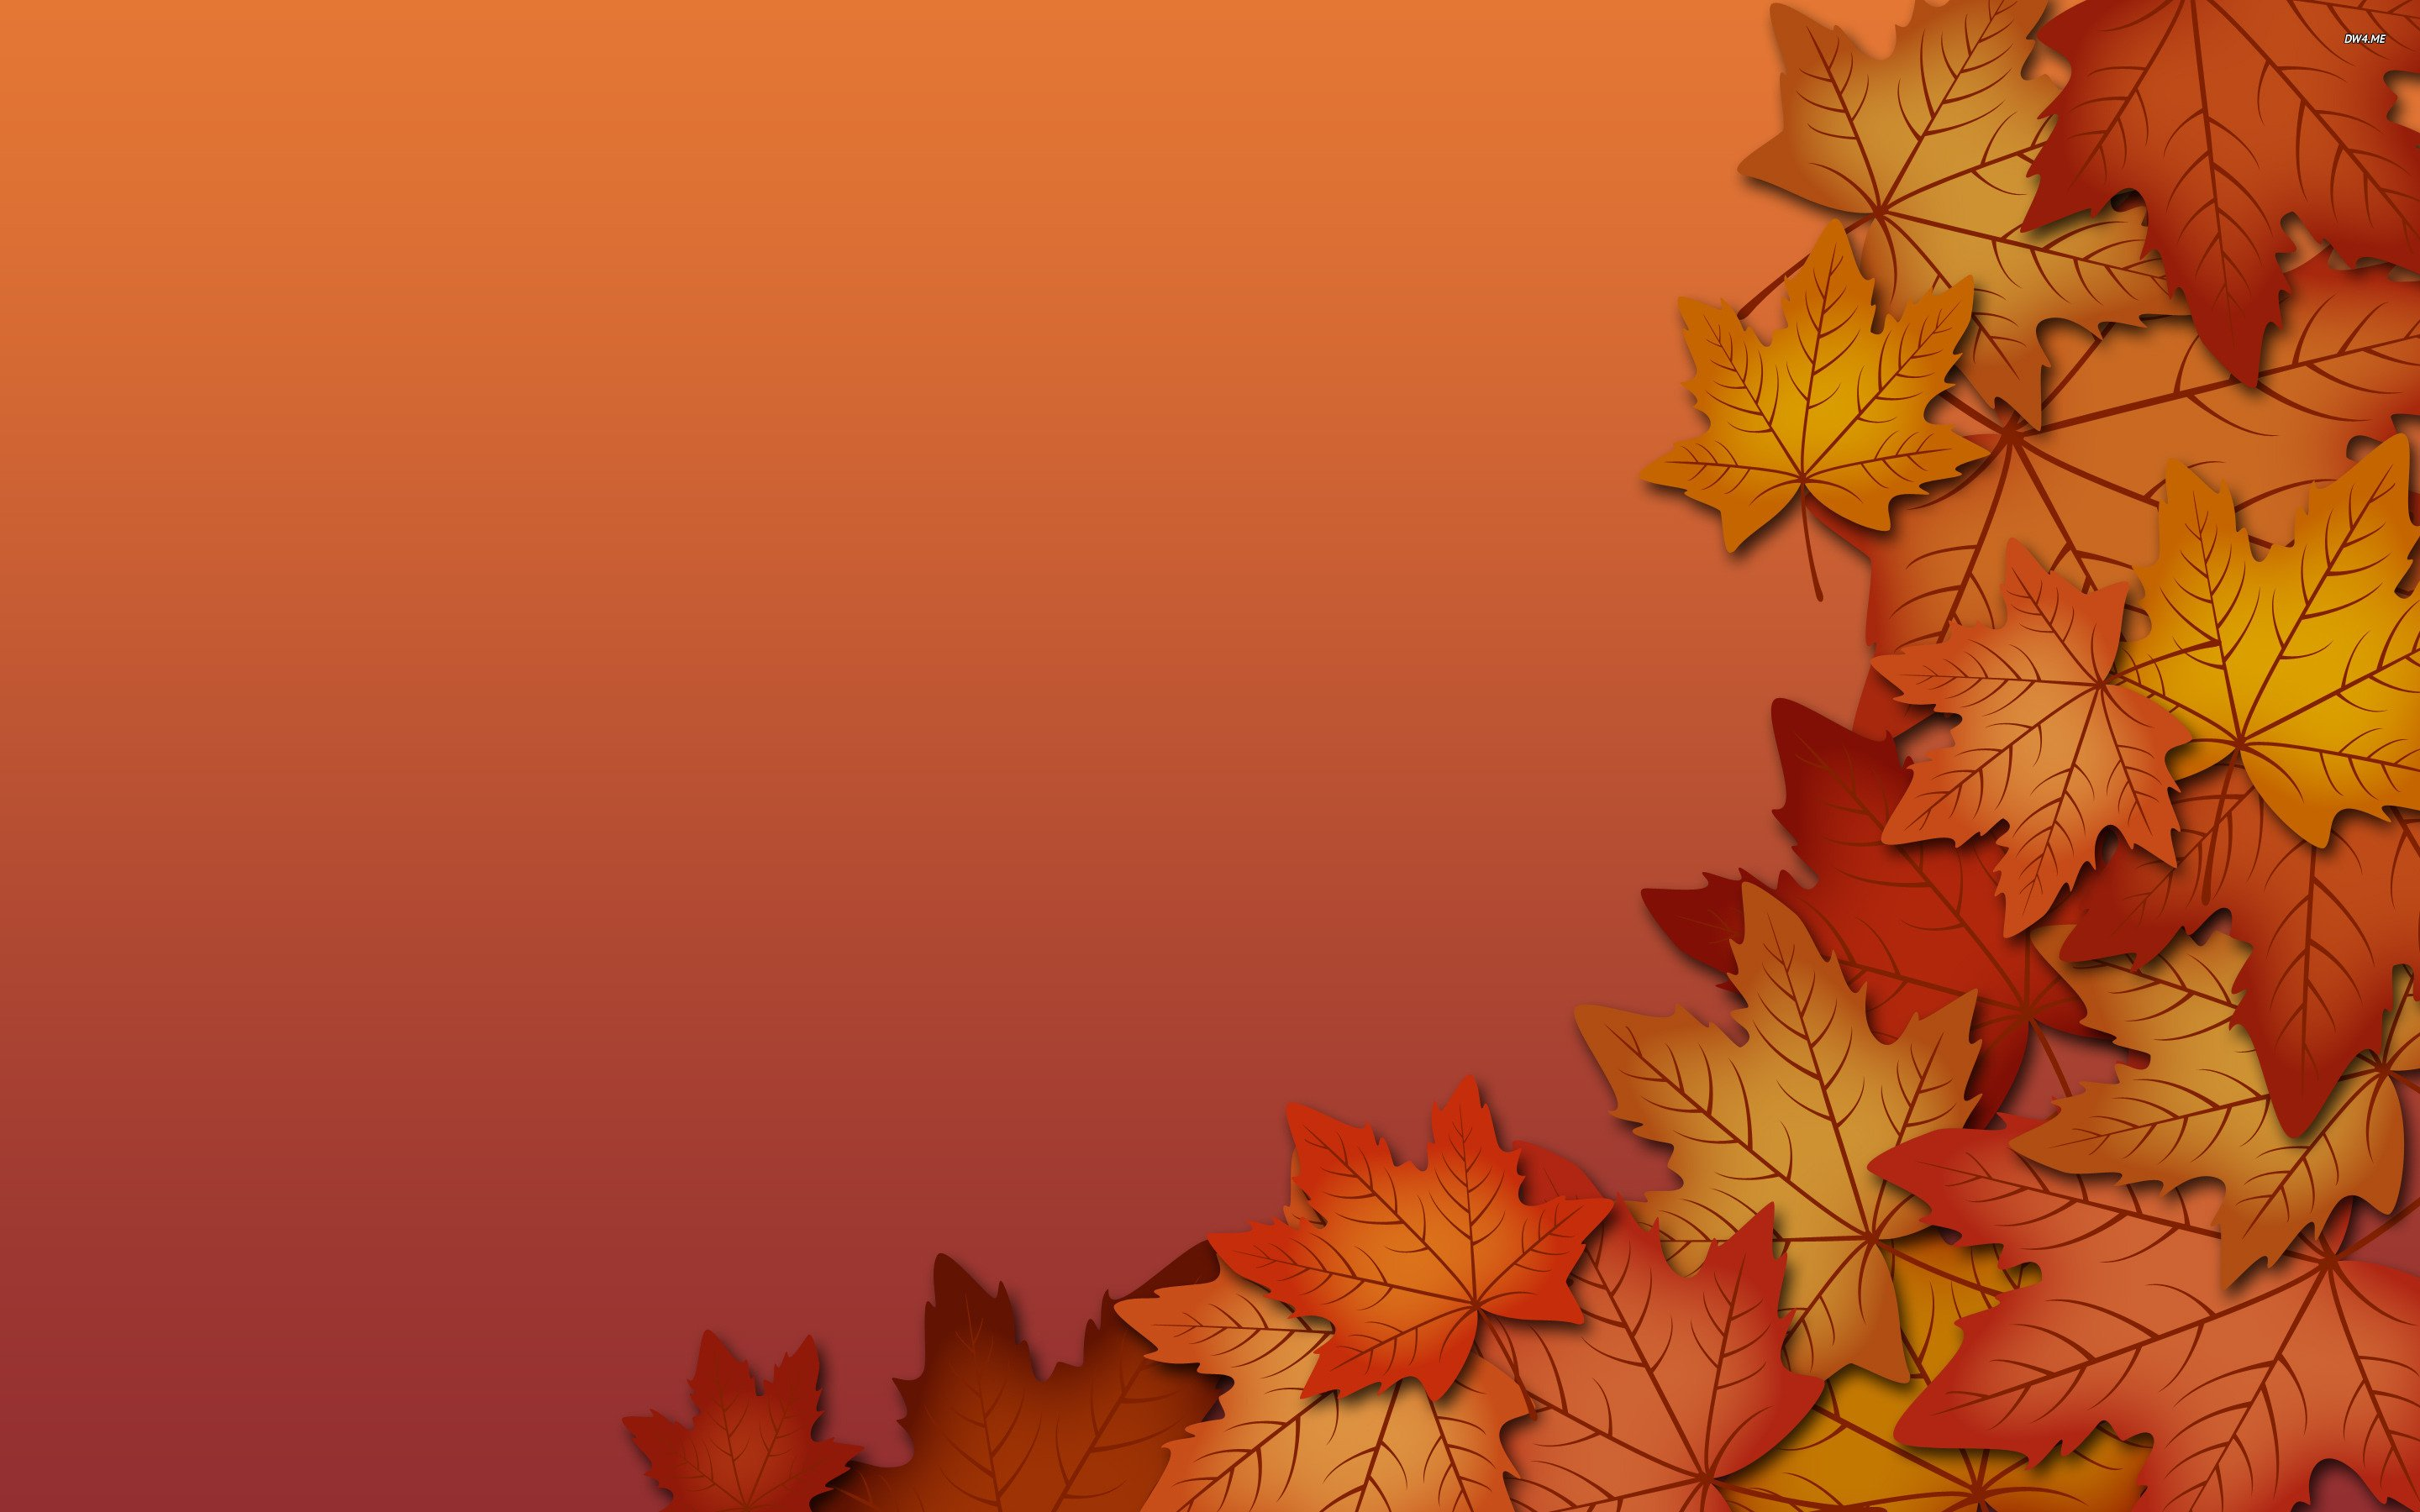 Fall Vector Foliage autumn fall 2880x1800